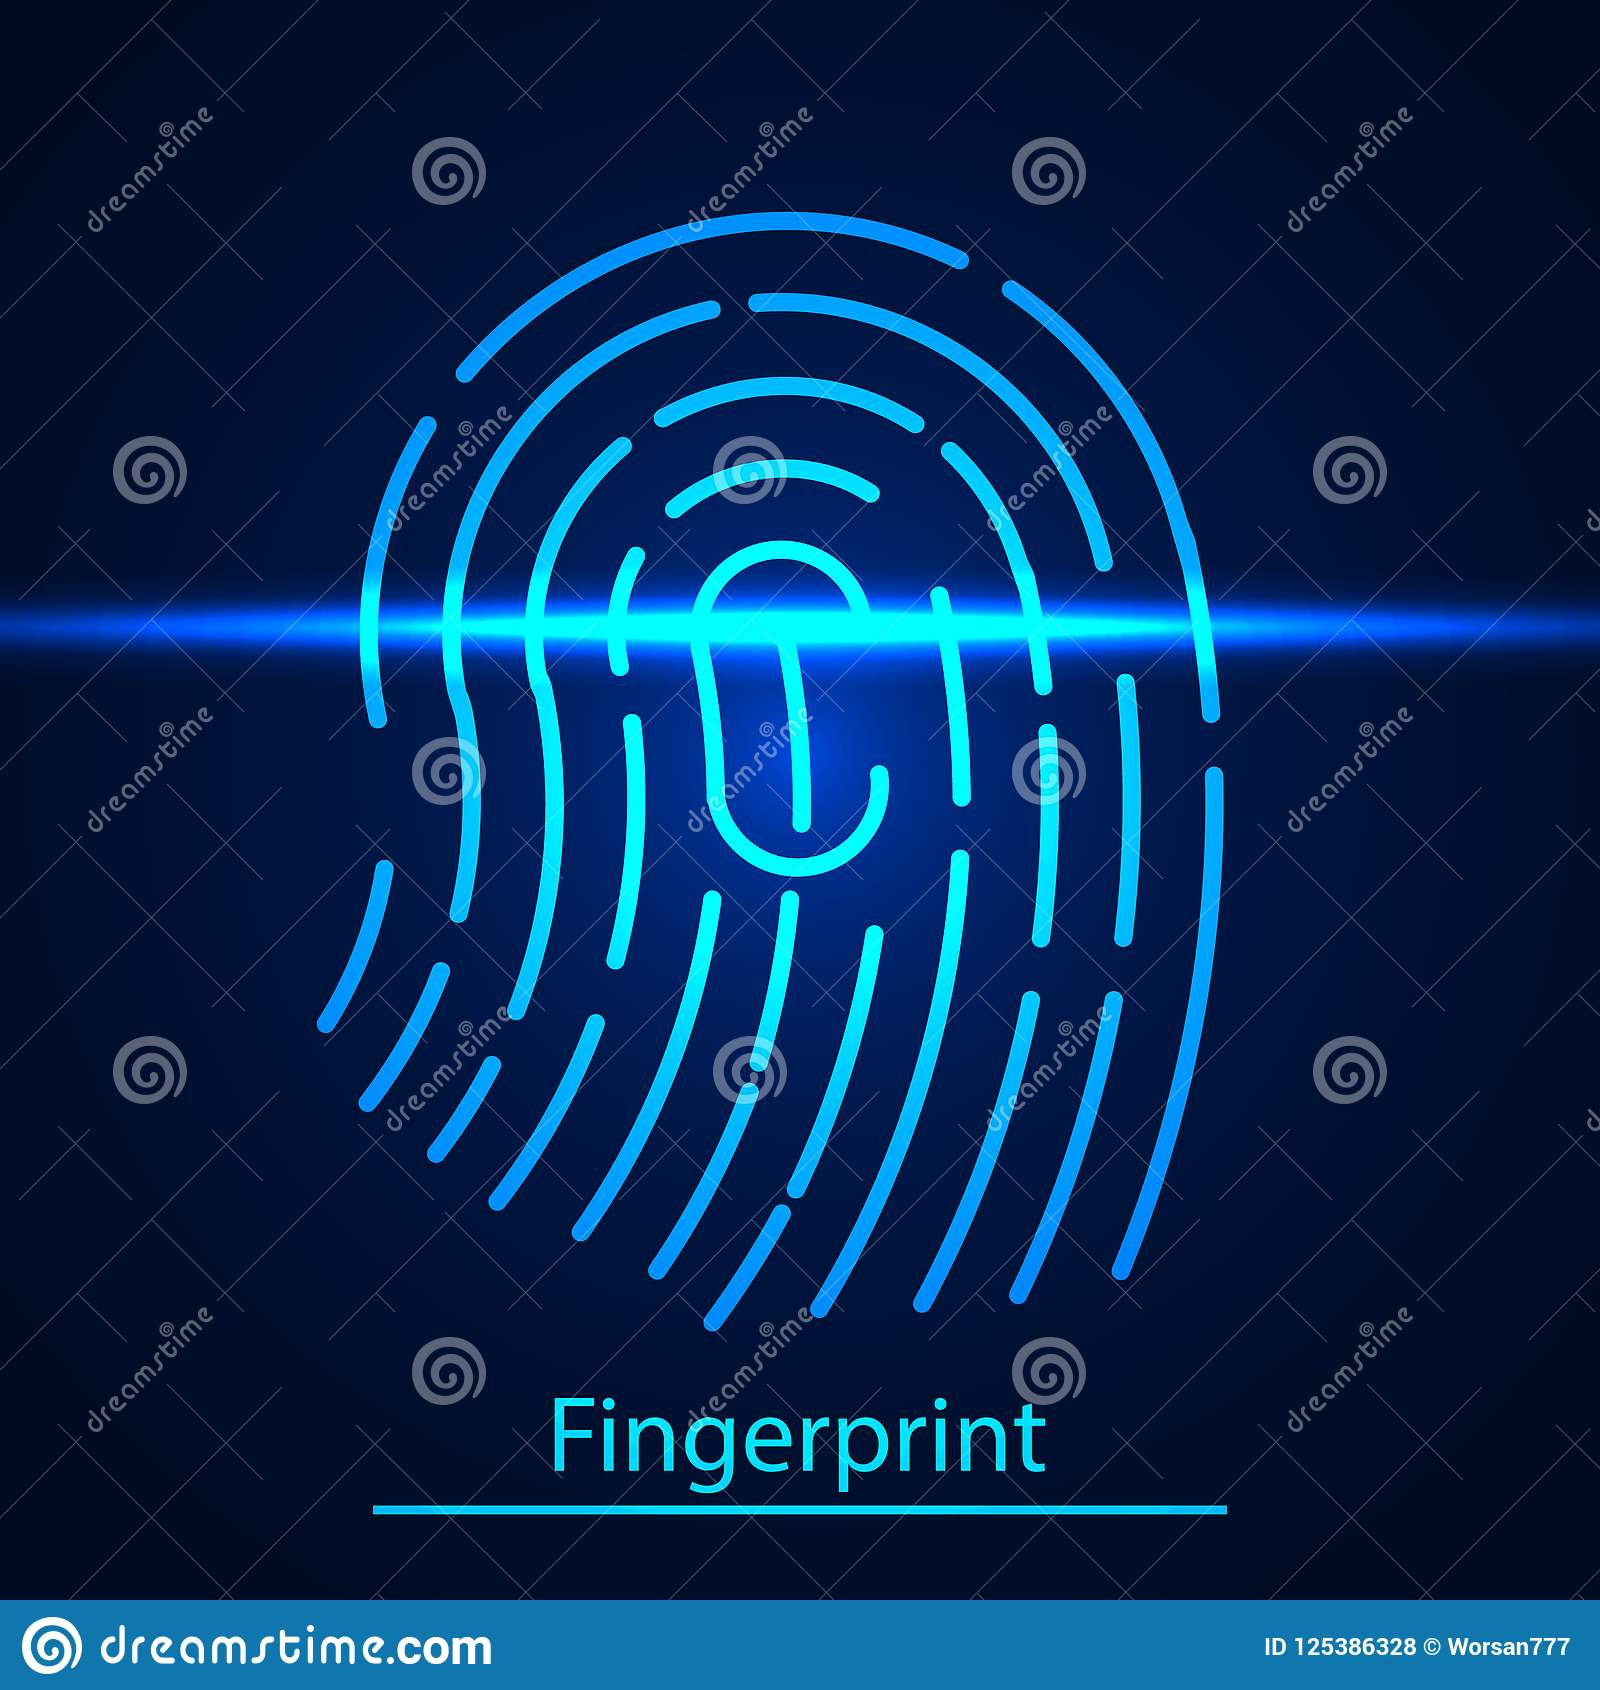 Fingerprint technology scanning Identification system. Fingerprint on blue scanning laser screen.